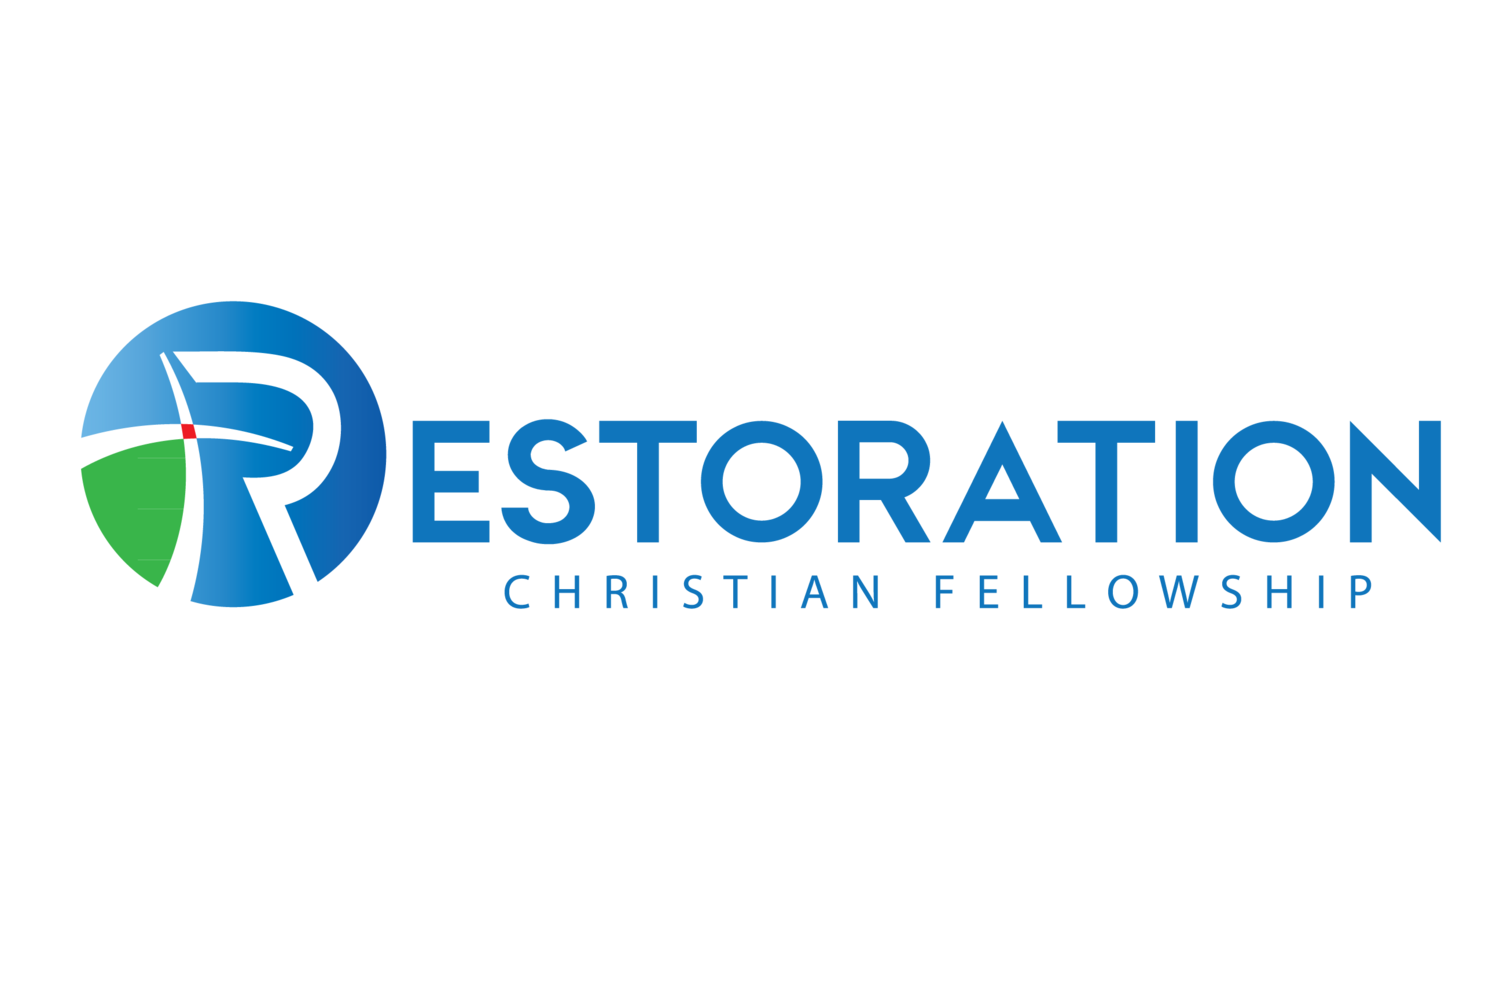 RESTORATION CHRISTIAN FELLOWSHIP